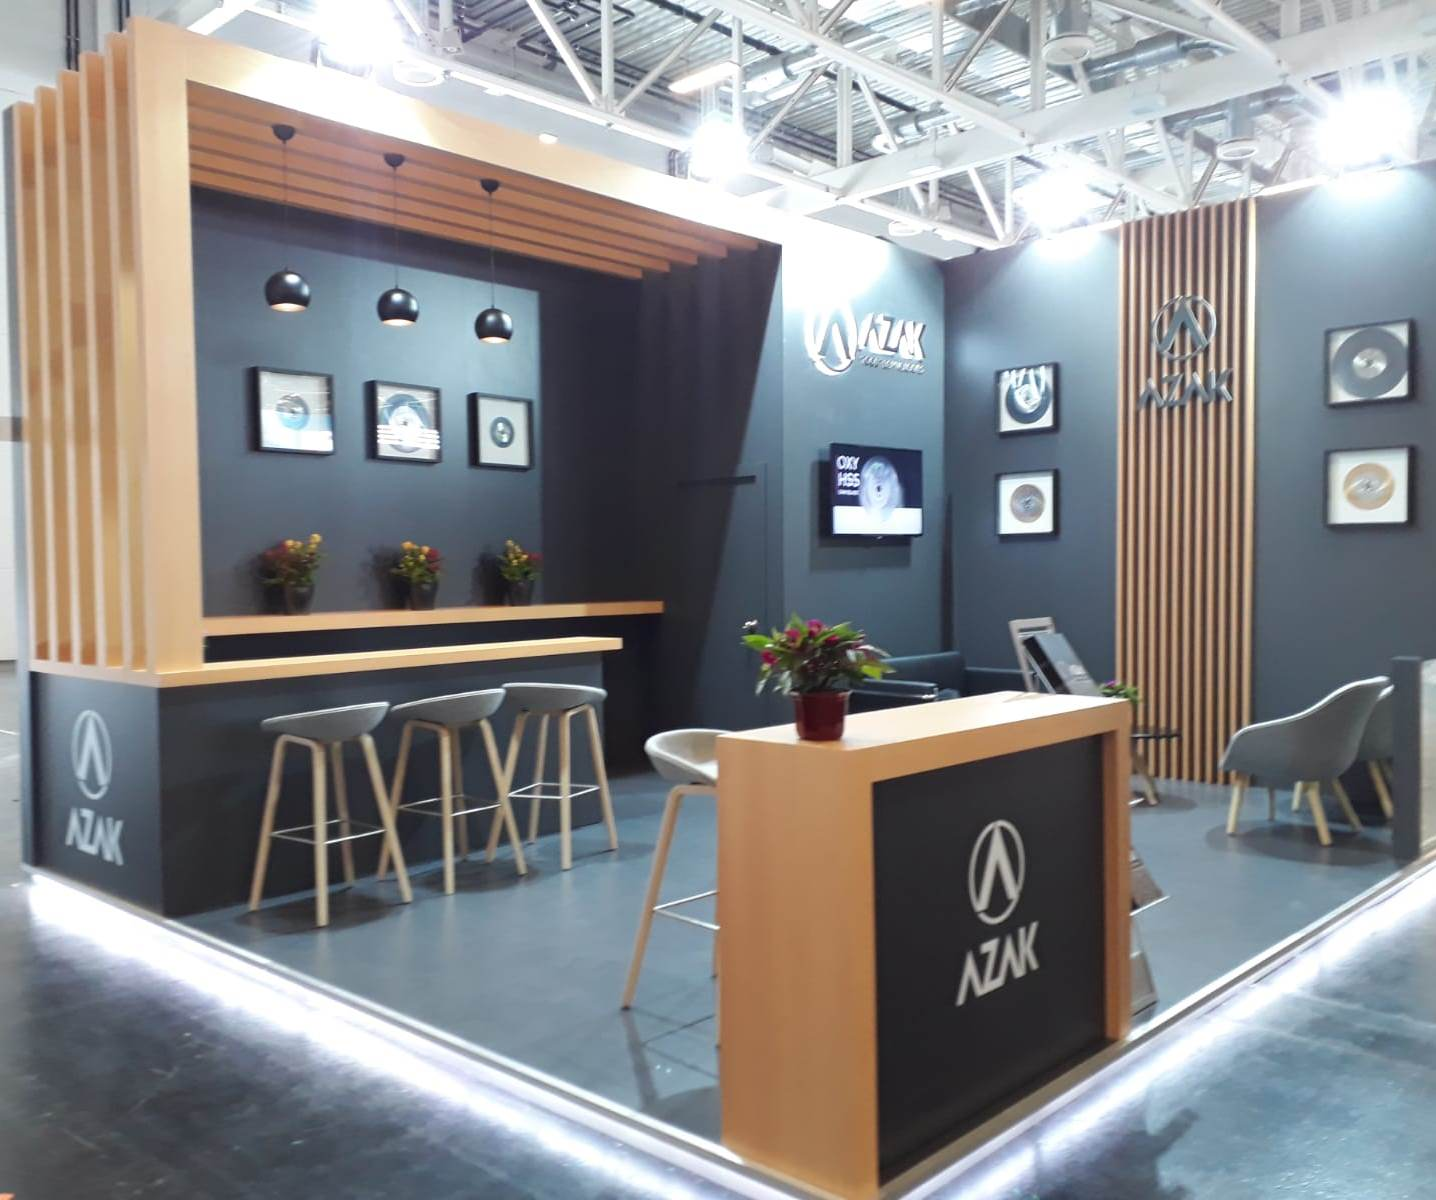 <a href='application-detail/145'>CLICK HERE - SAW EXPO 2018 GERMANY AZAK STAND   SHOW MORE<a/>